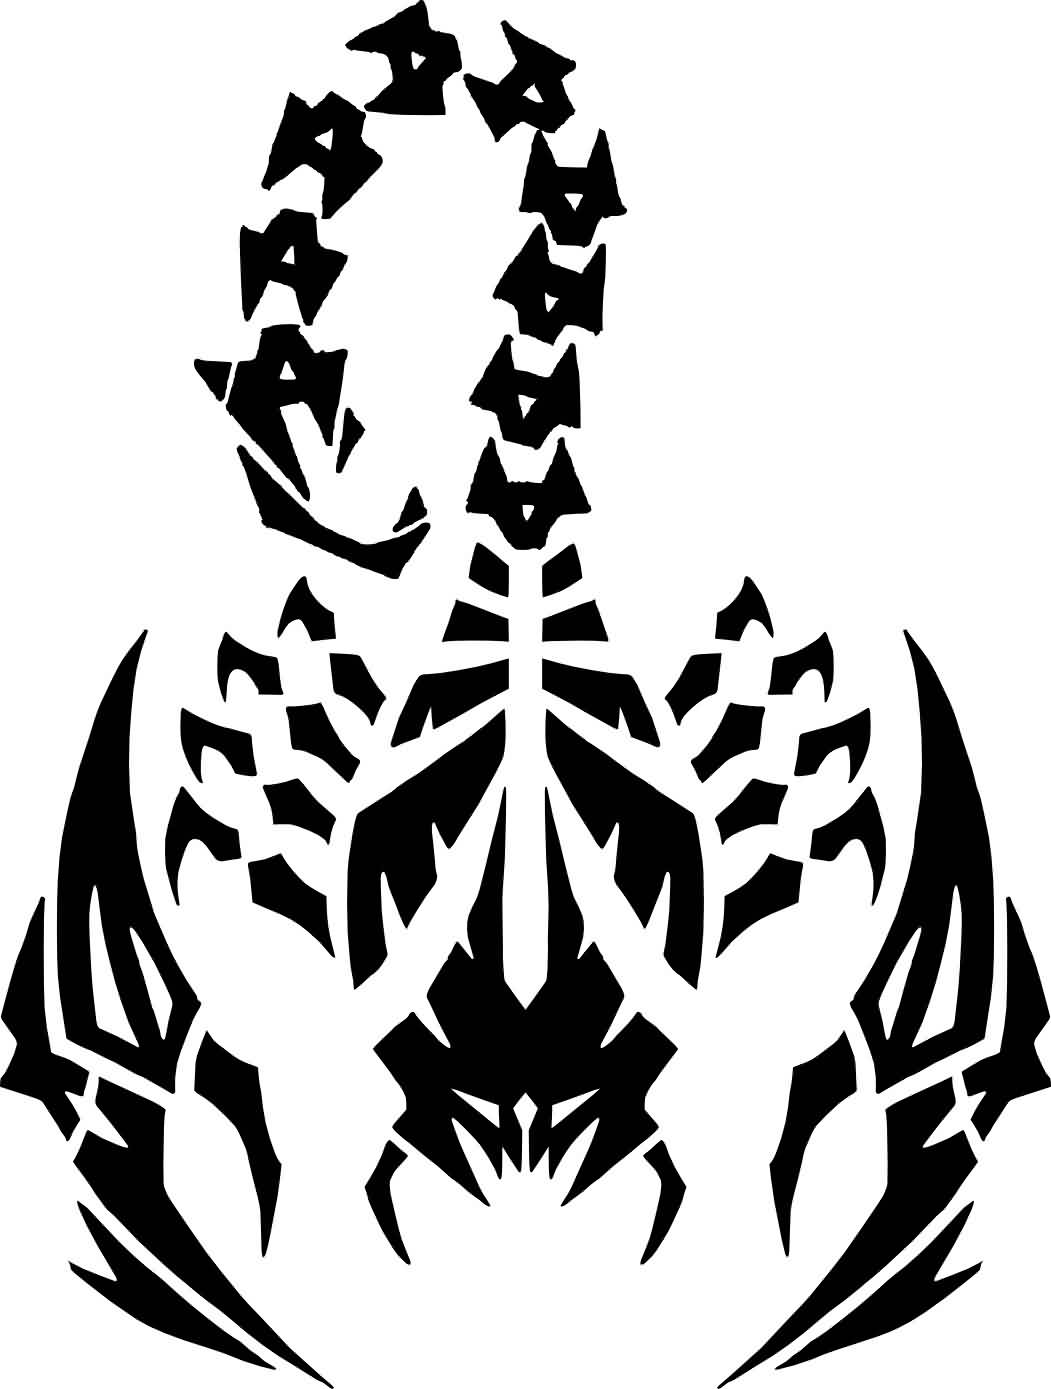 Scorpion Tribal Tattoo Version (13)